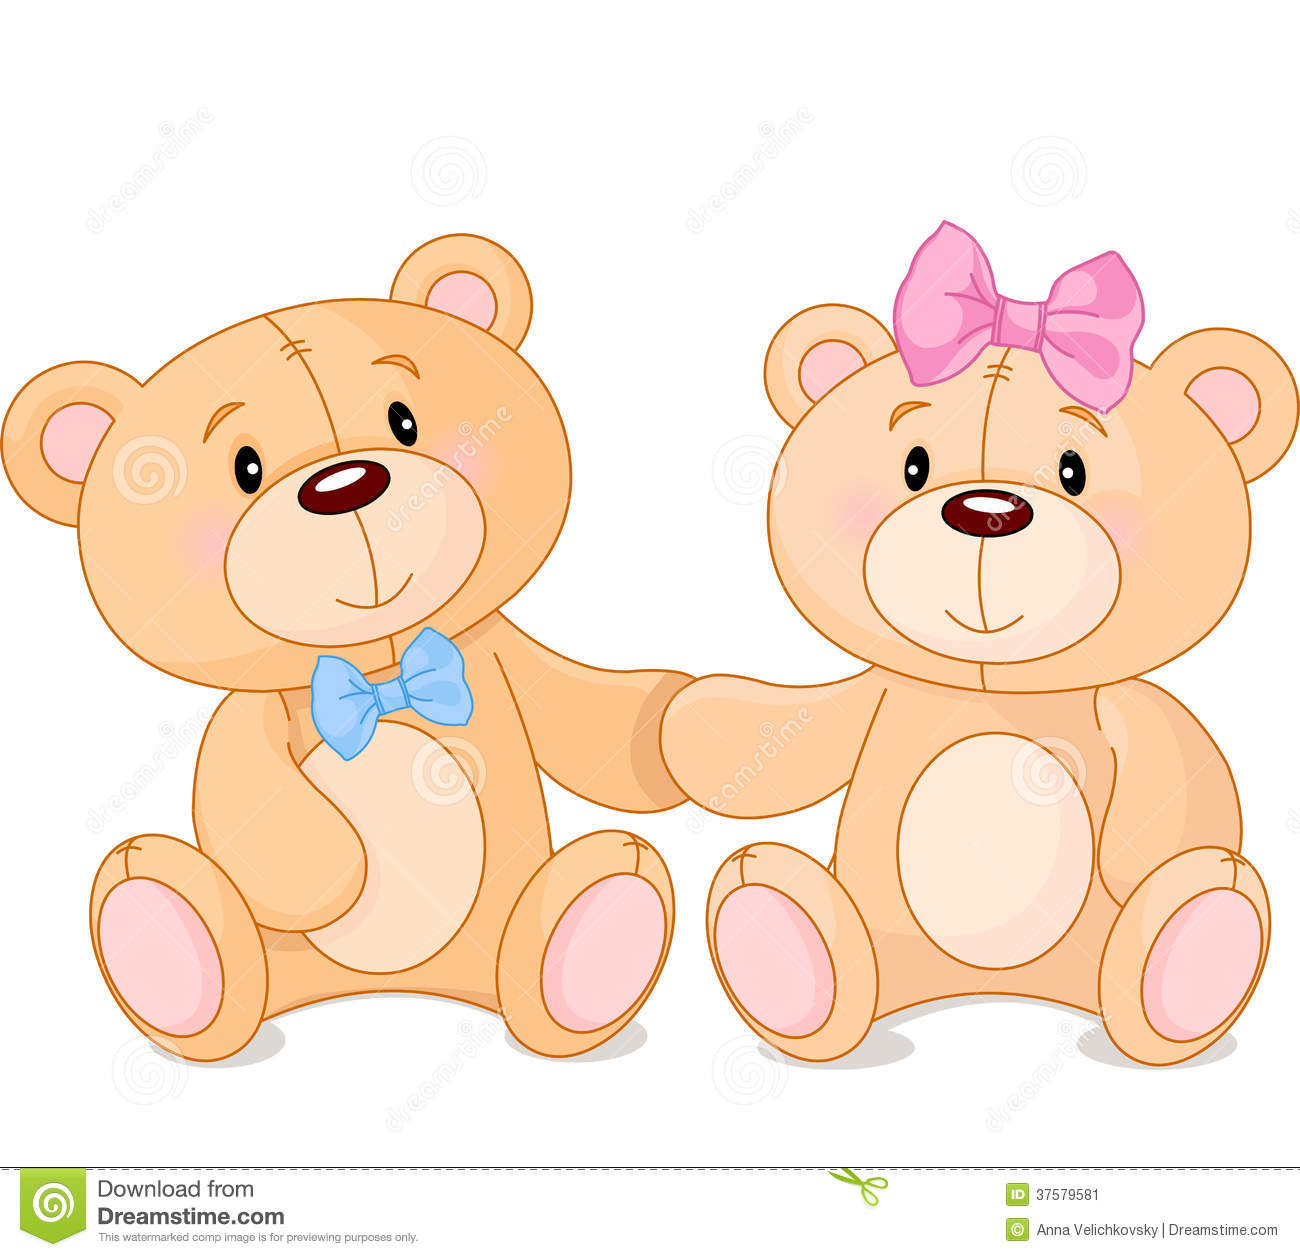 Draw Cute Teddy Bear Step by Step Drawing Lessons